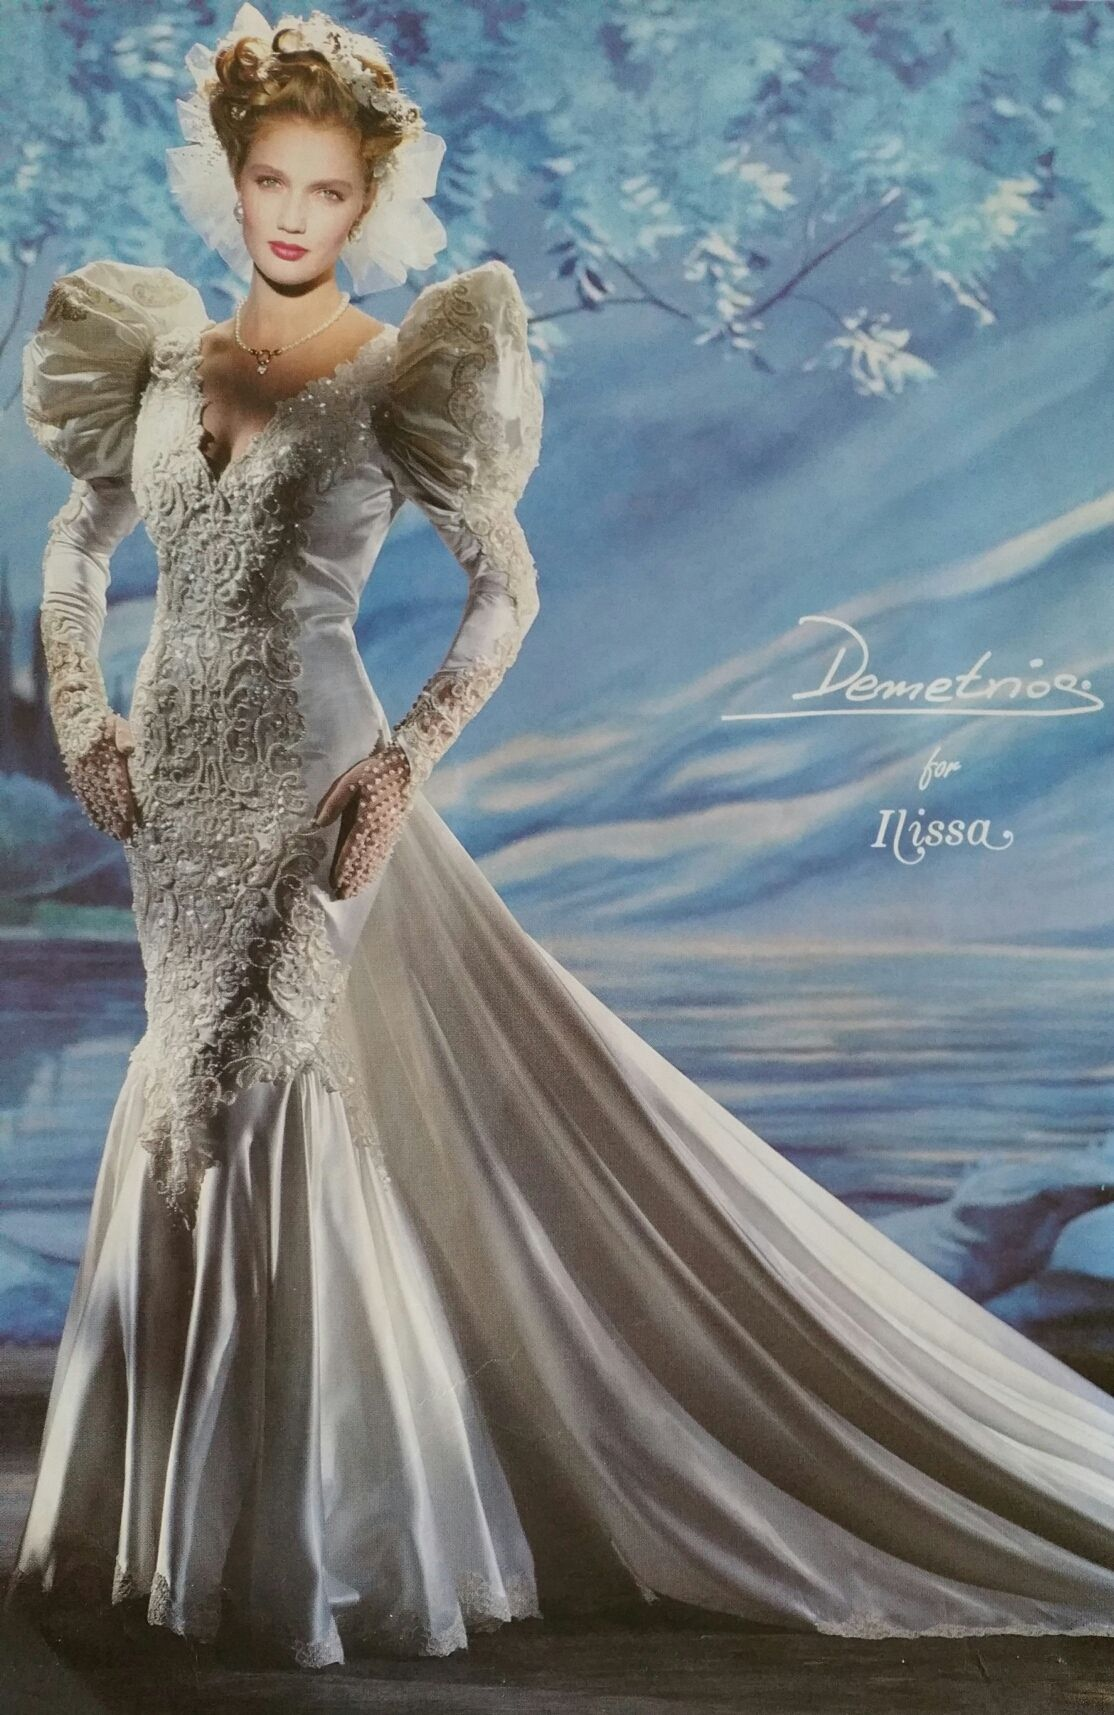 Demetrios 1990/1991 | Demetrios gowns 24 to over 30 years old -but ...